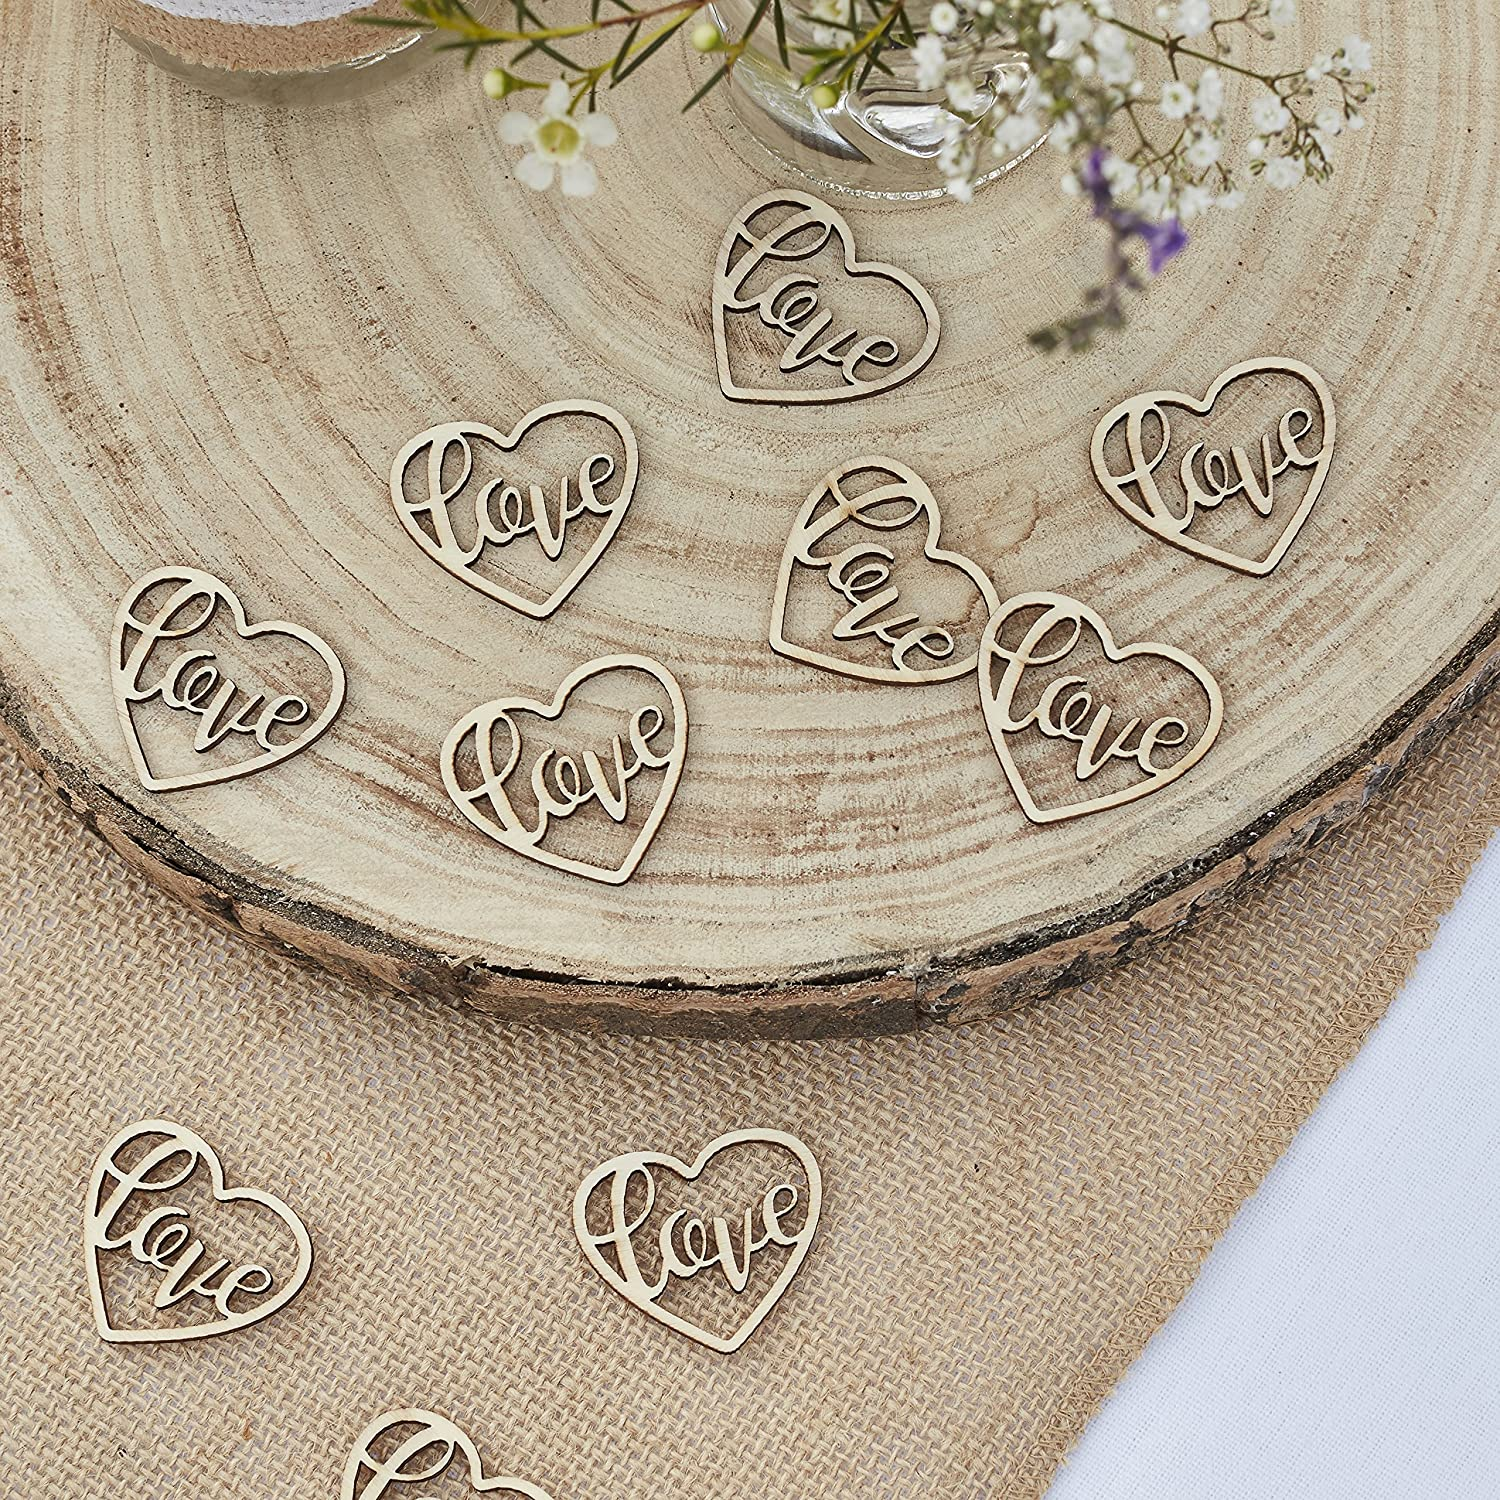 24 Pieces Ginger Ray Wooden Cut Out Love Heart Table Confetti Rustic Country